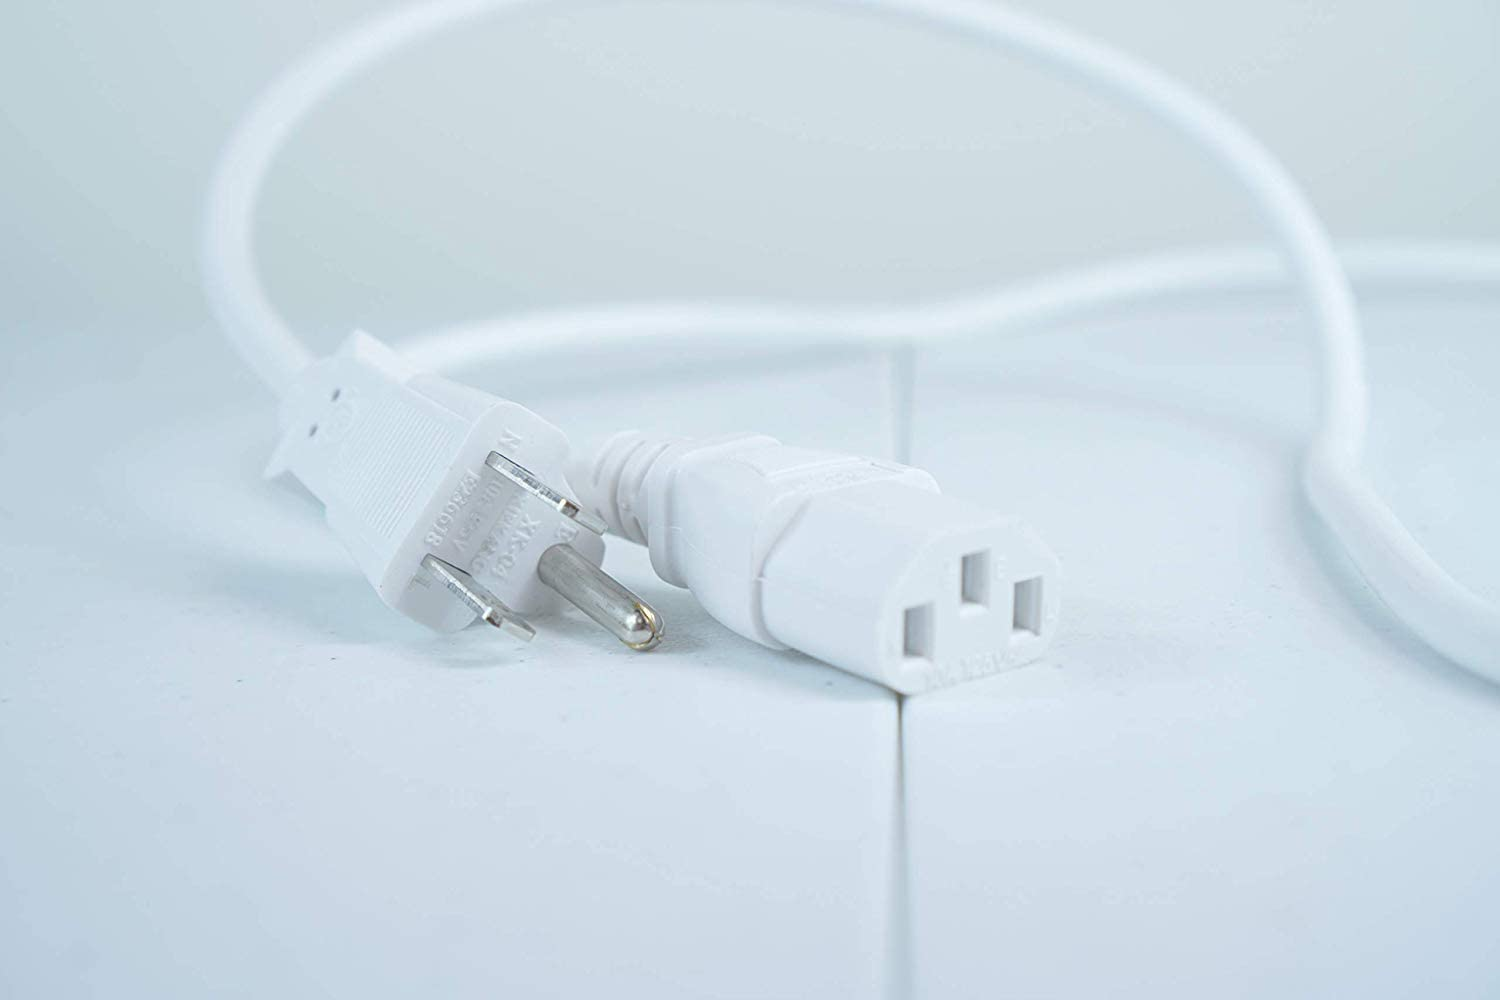 UL Listed OMNIHIL White 15 Feet Long AC Power Cord Compatible with Sony VPLHW65ES 1080p 3D SXRD Home Theater Projector